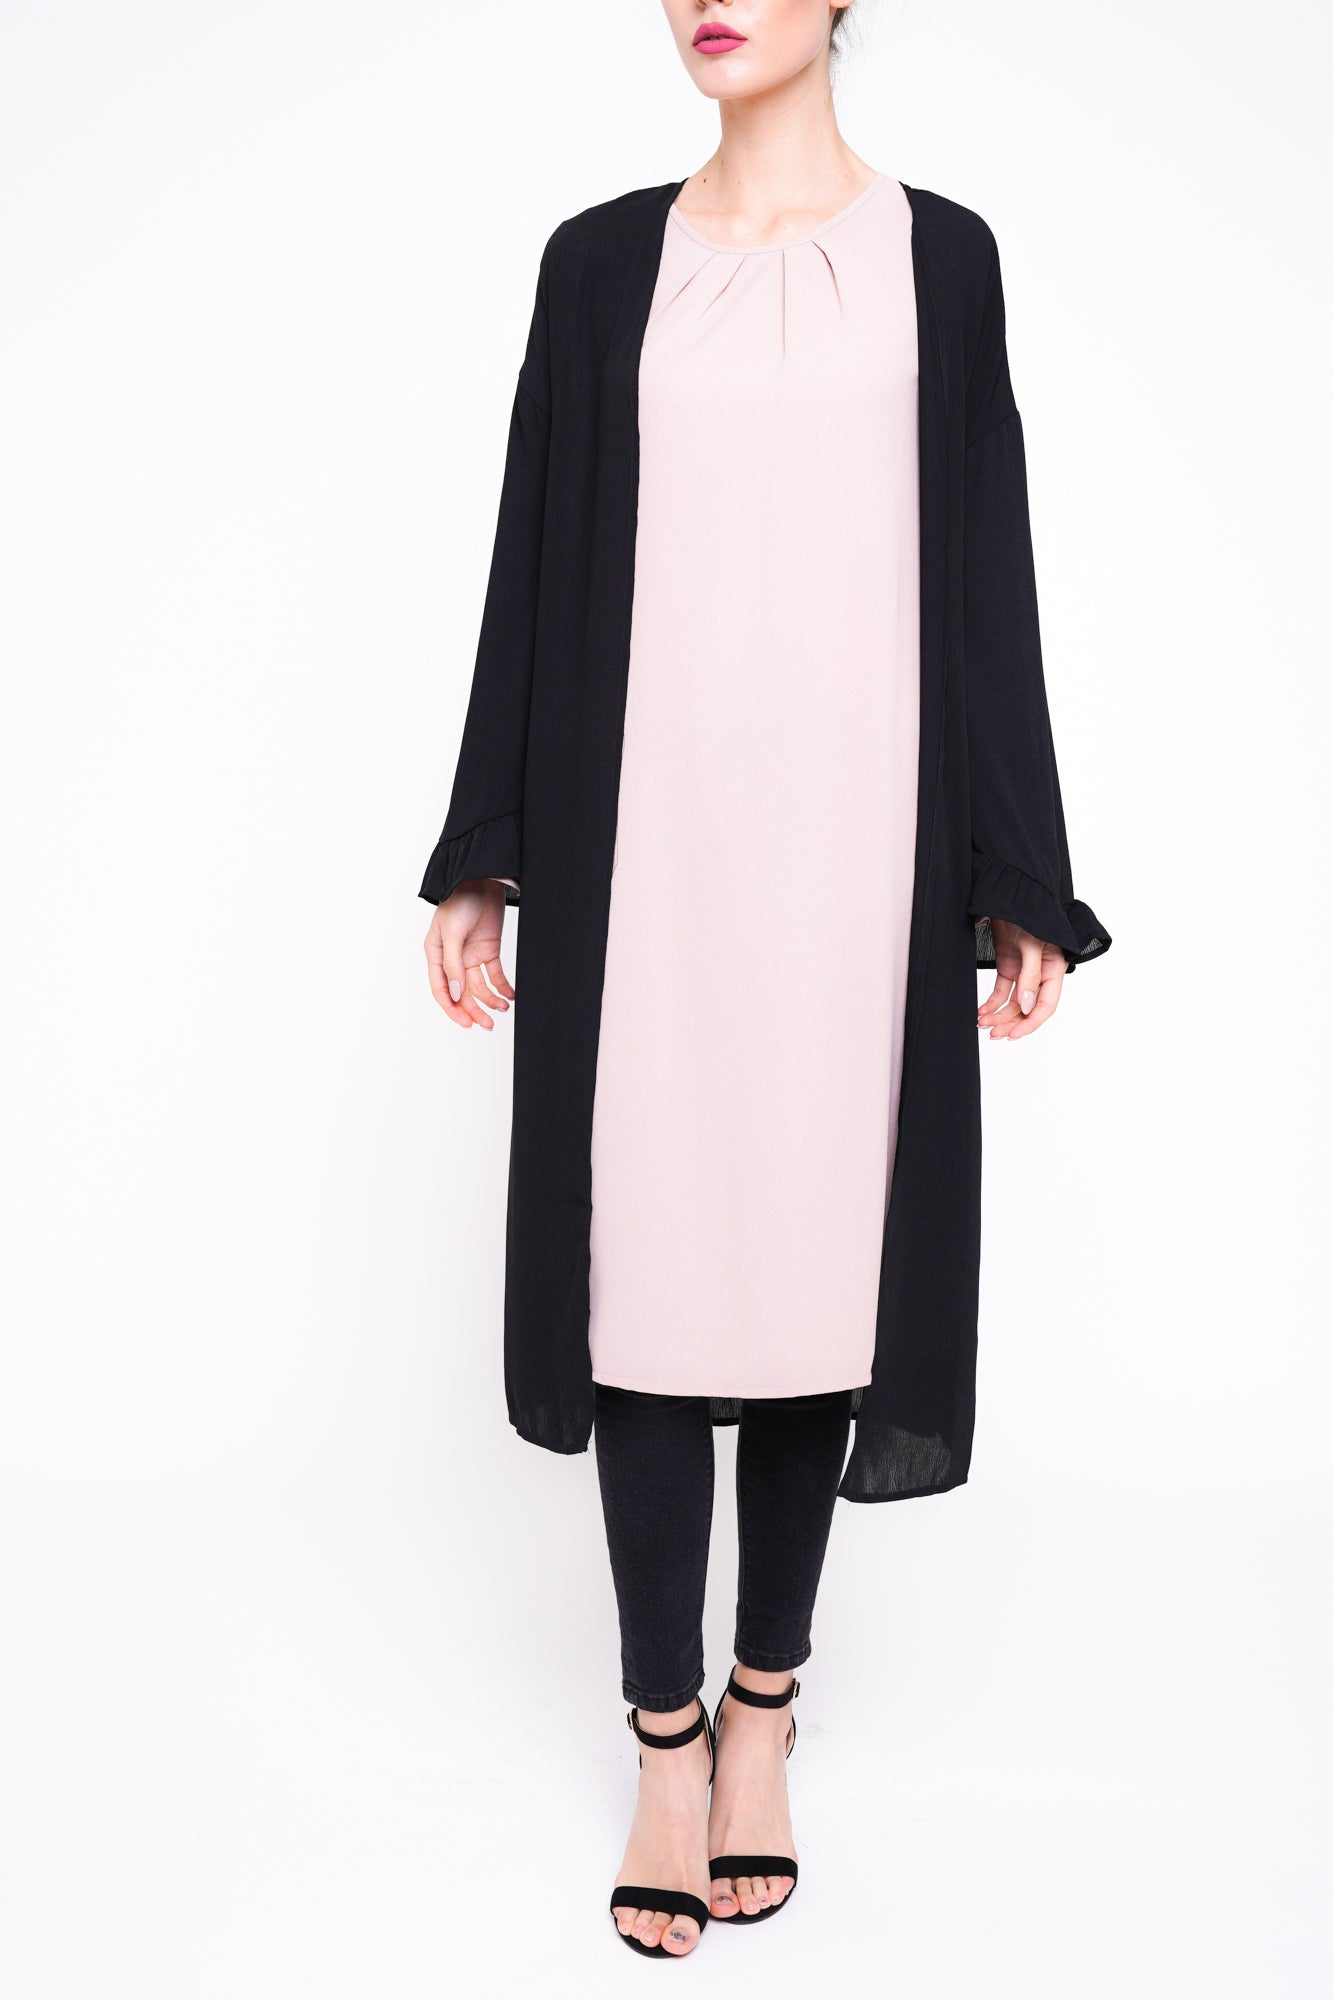 Bell sleeve Cover Up Black